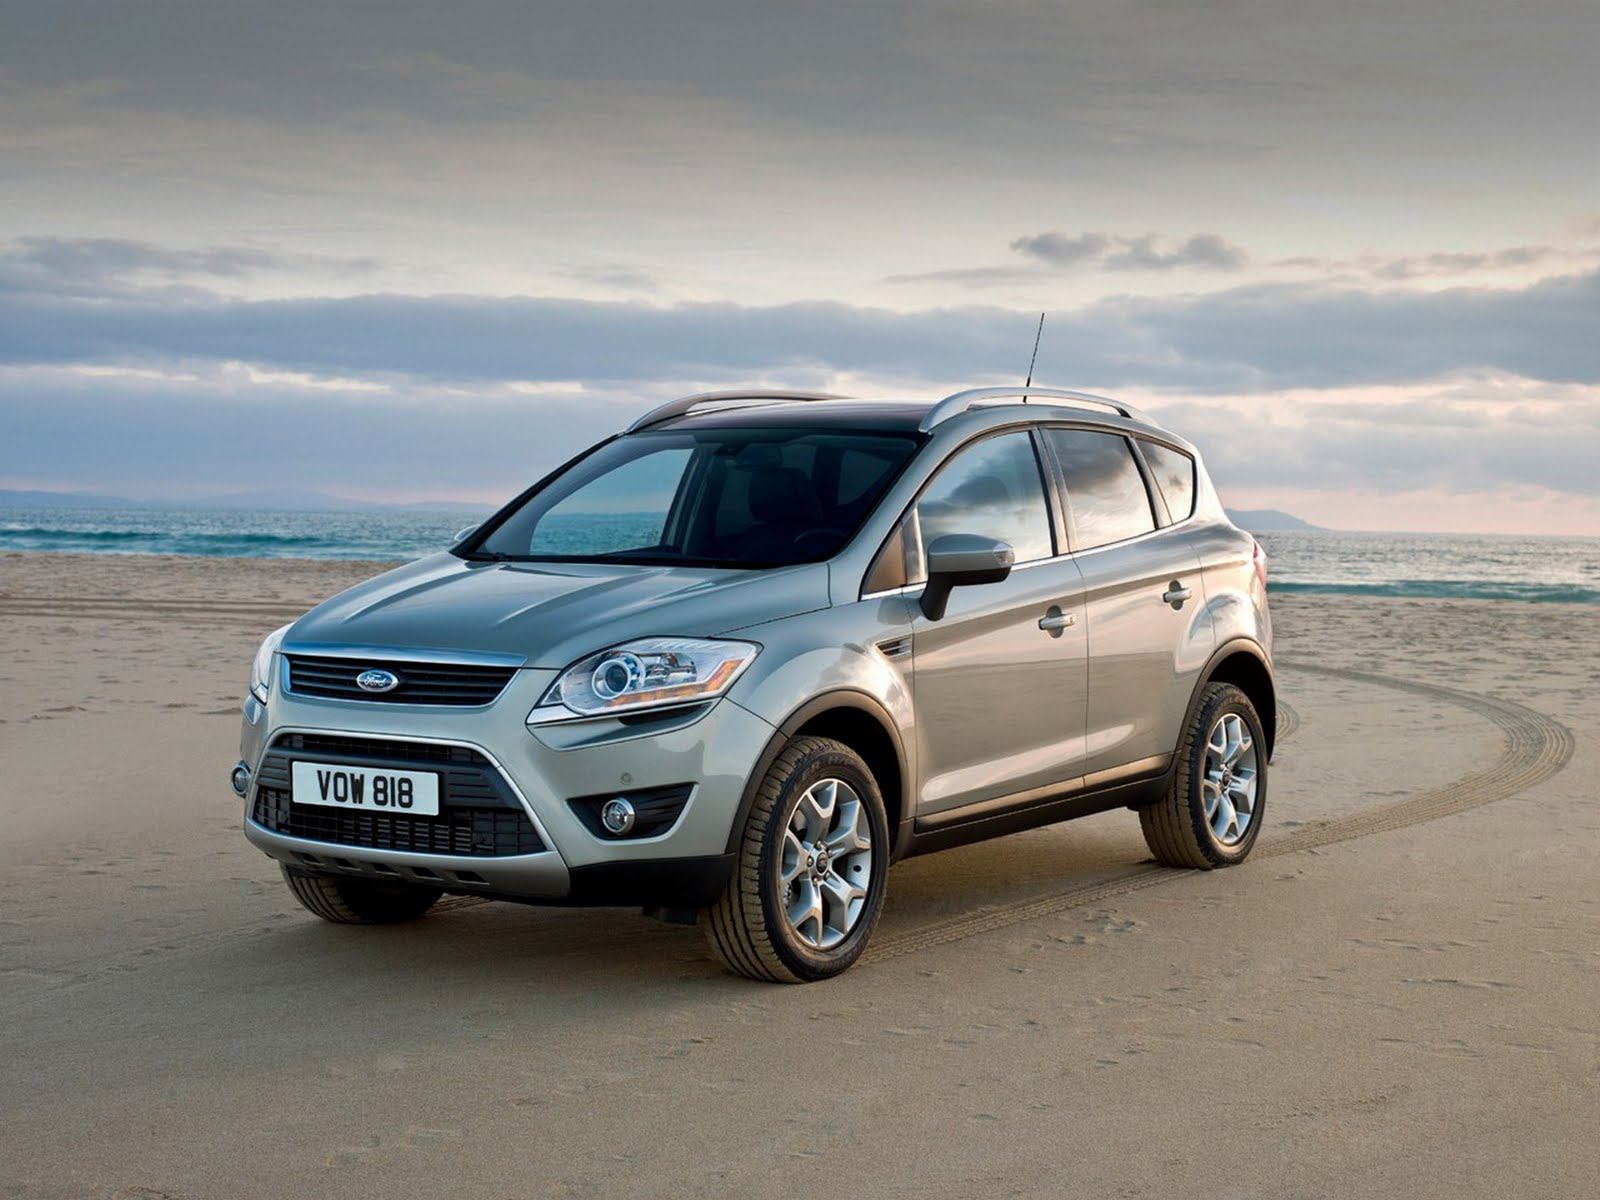 2012 ford kuga features and price automobile reviews. Black Bedroom Furniture Sets. Home Design Ideas